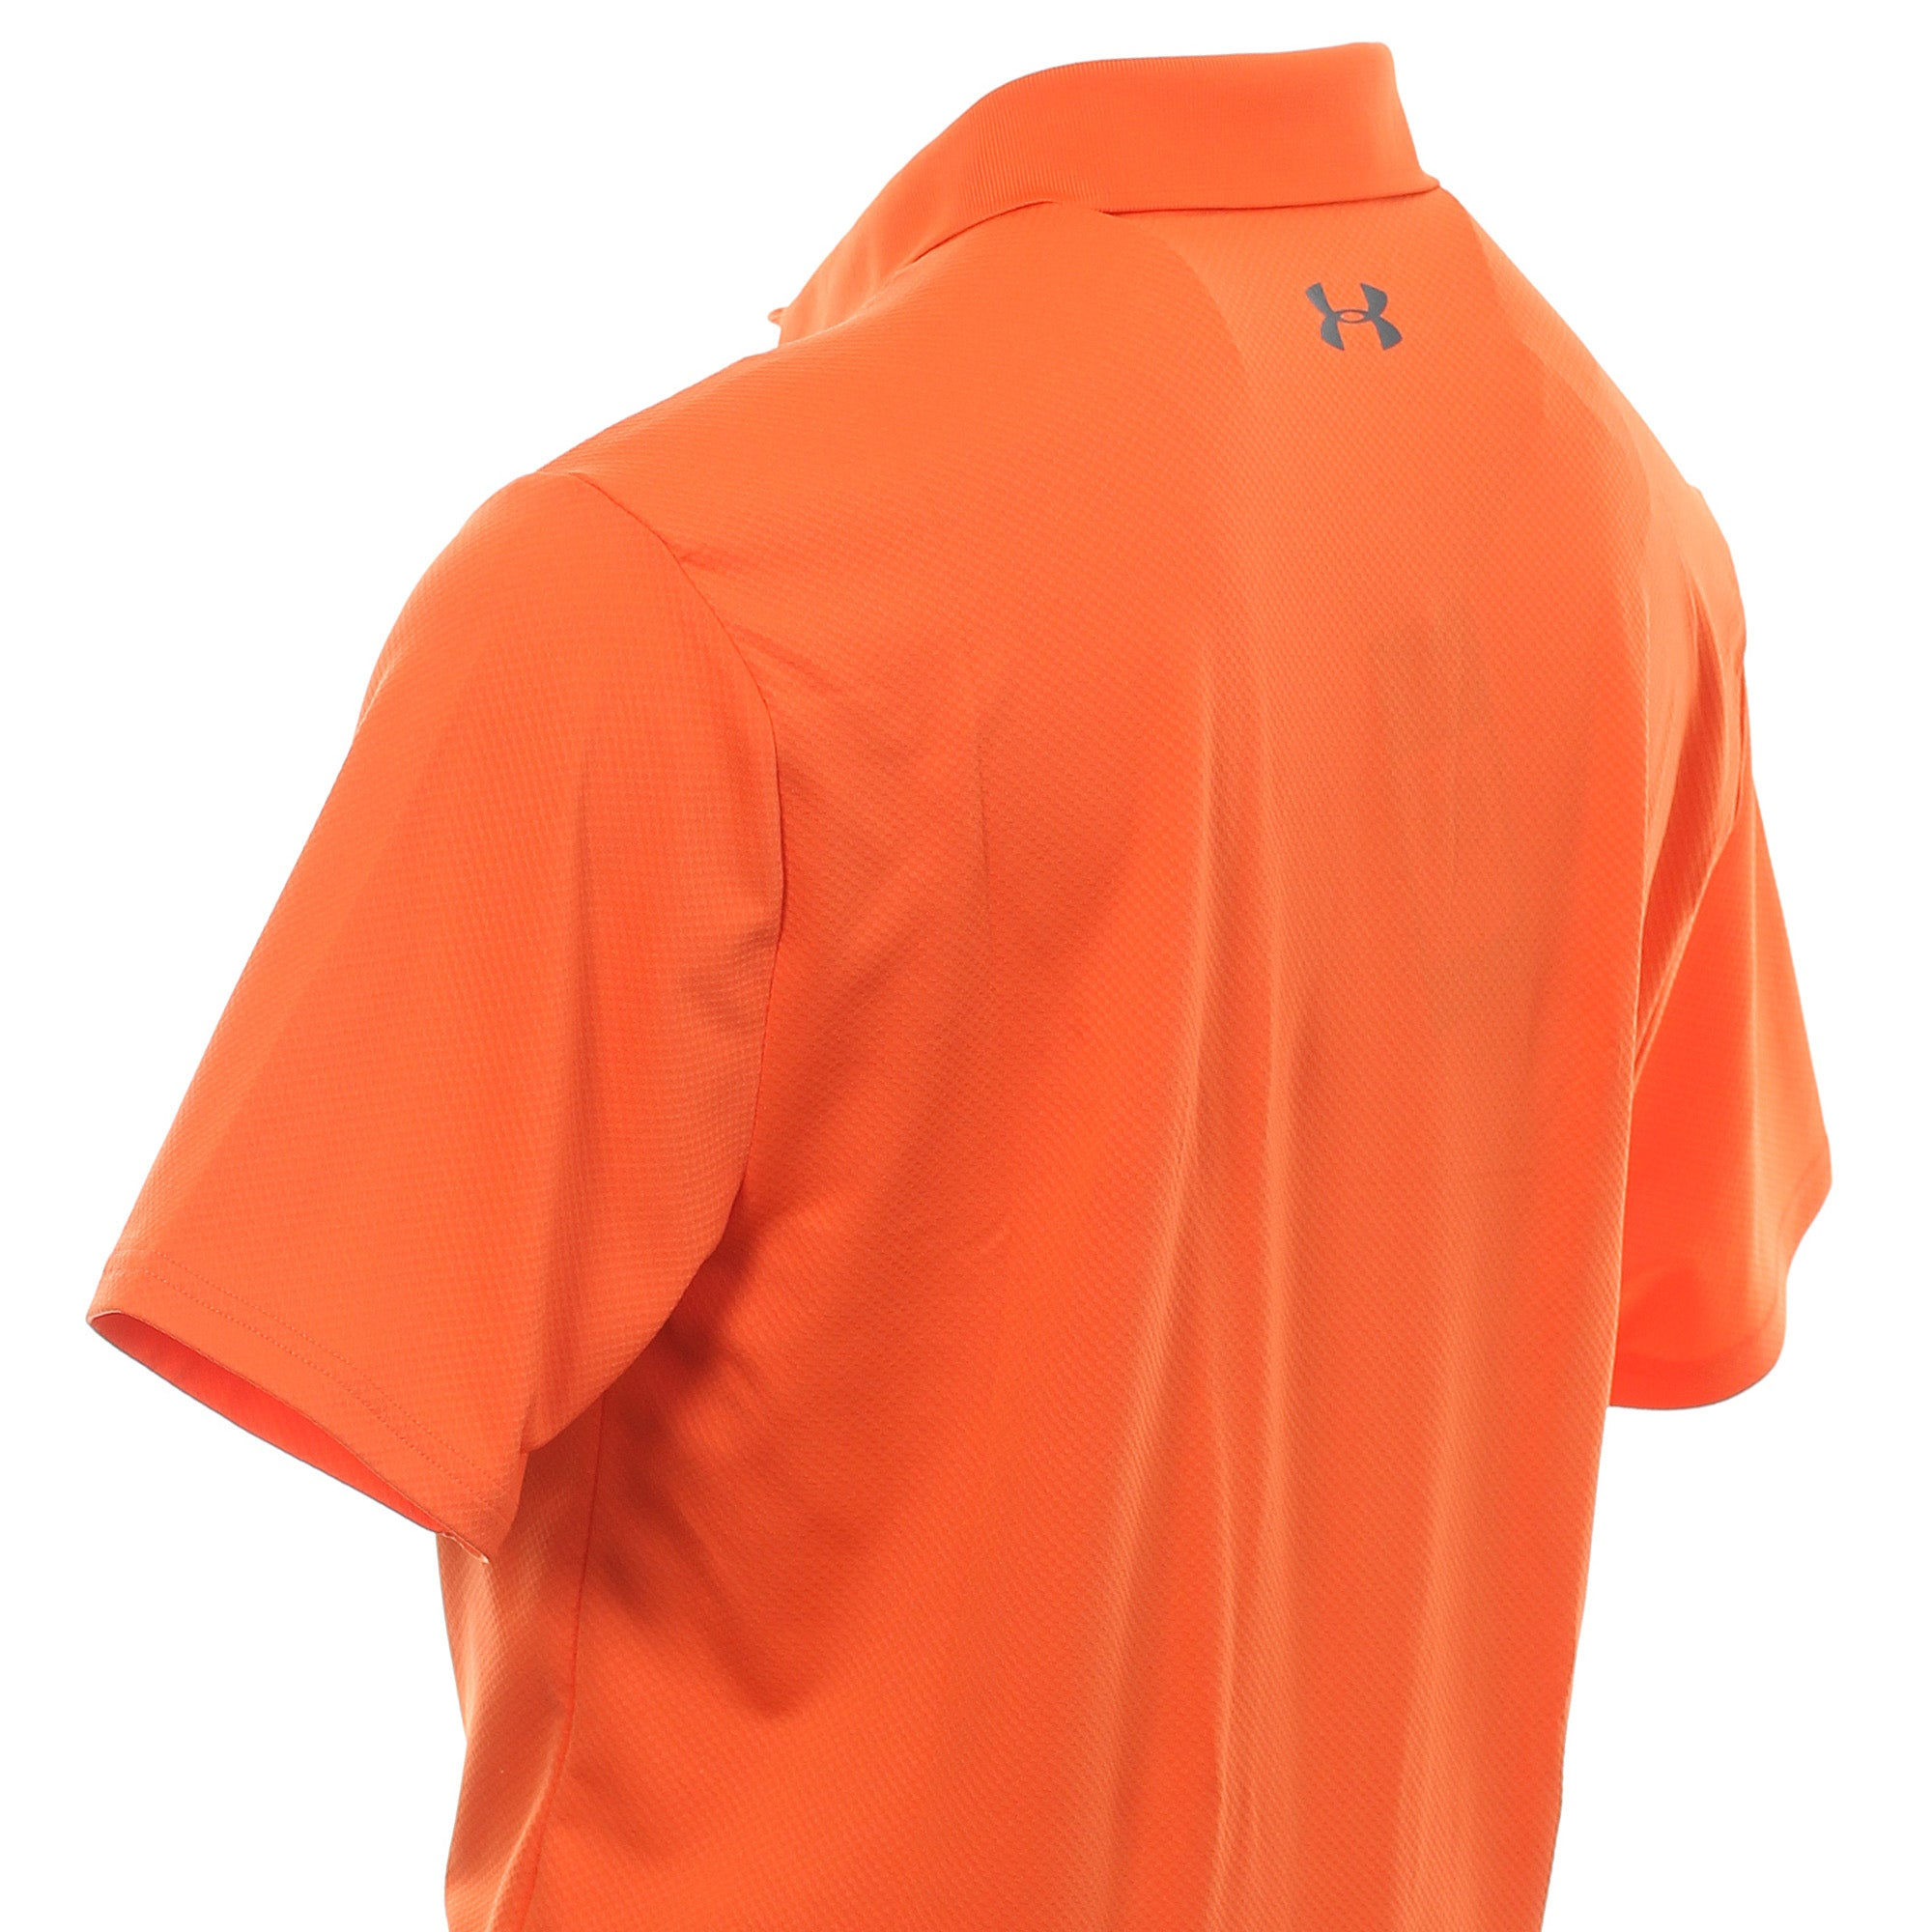 Under Armour Golf Performance 2.0 Shirt 1342080